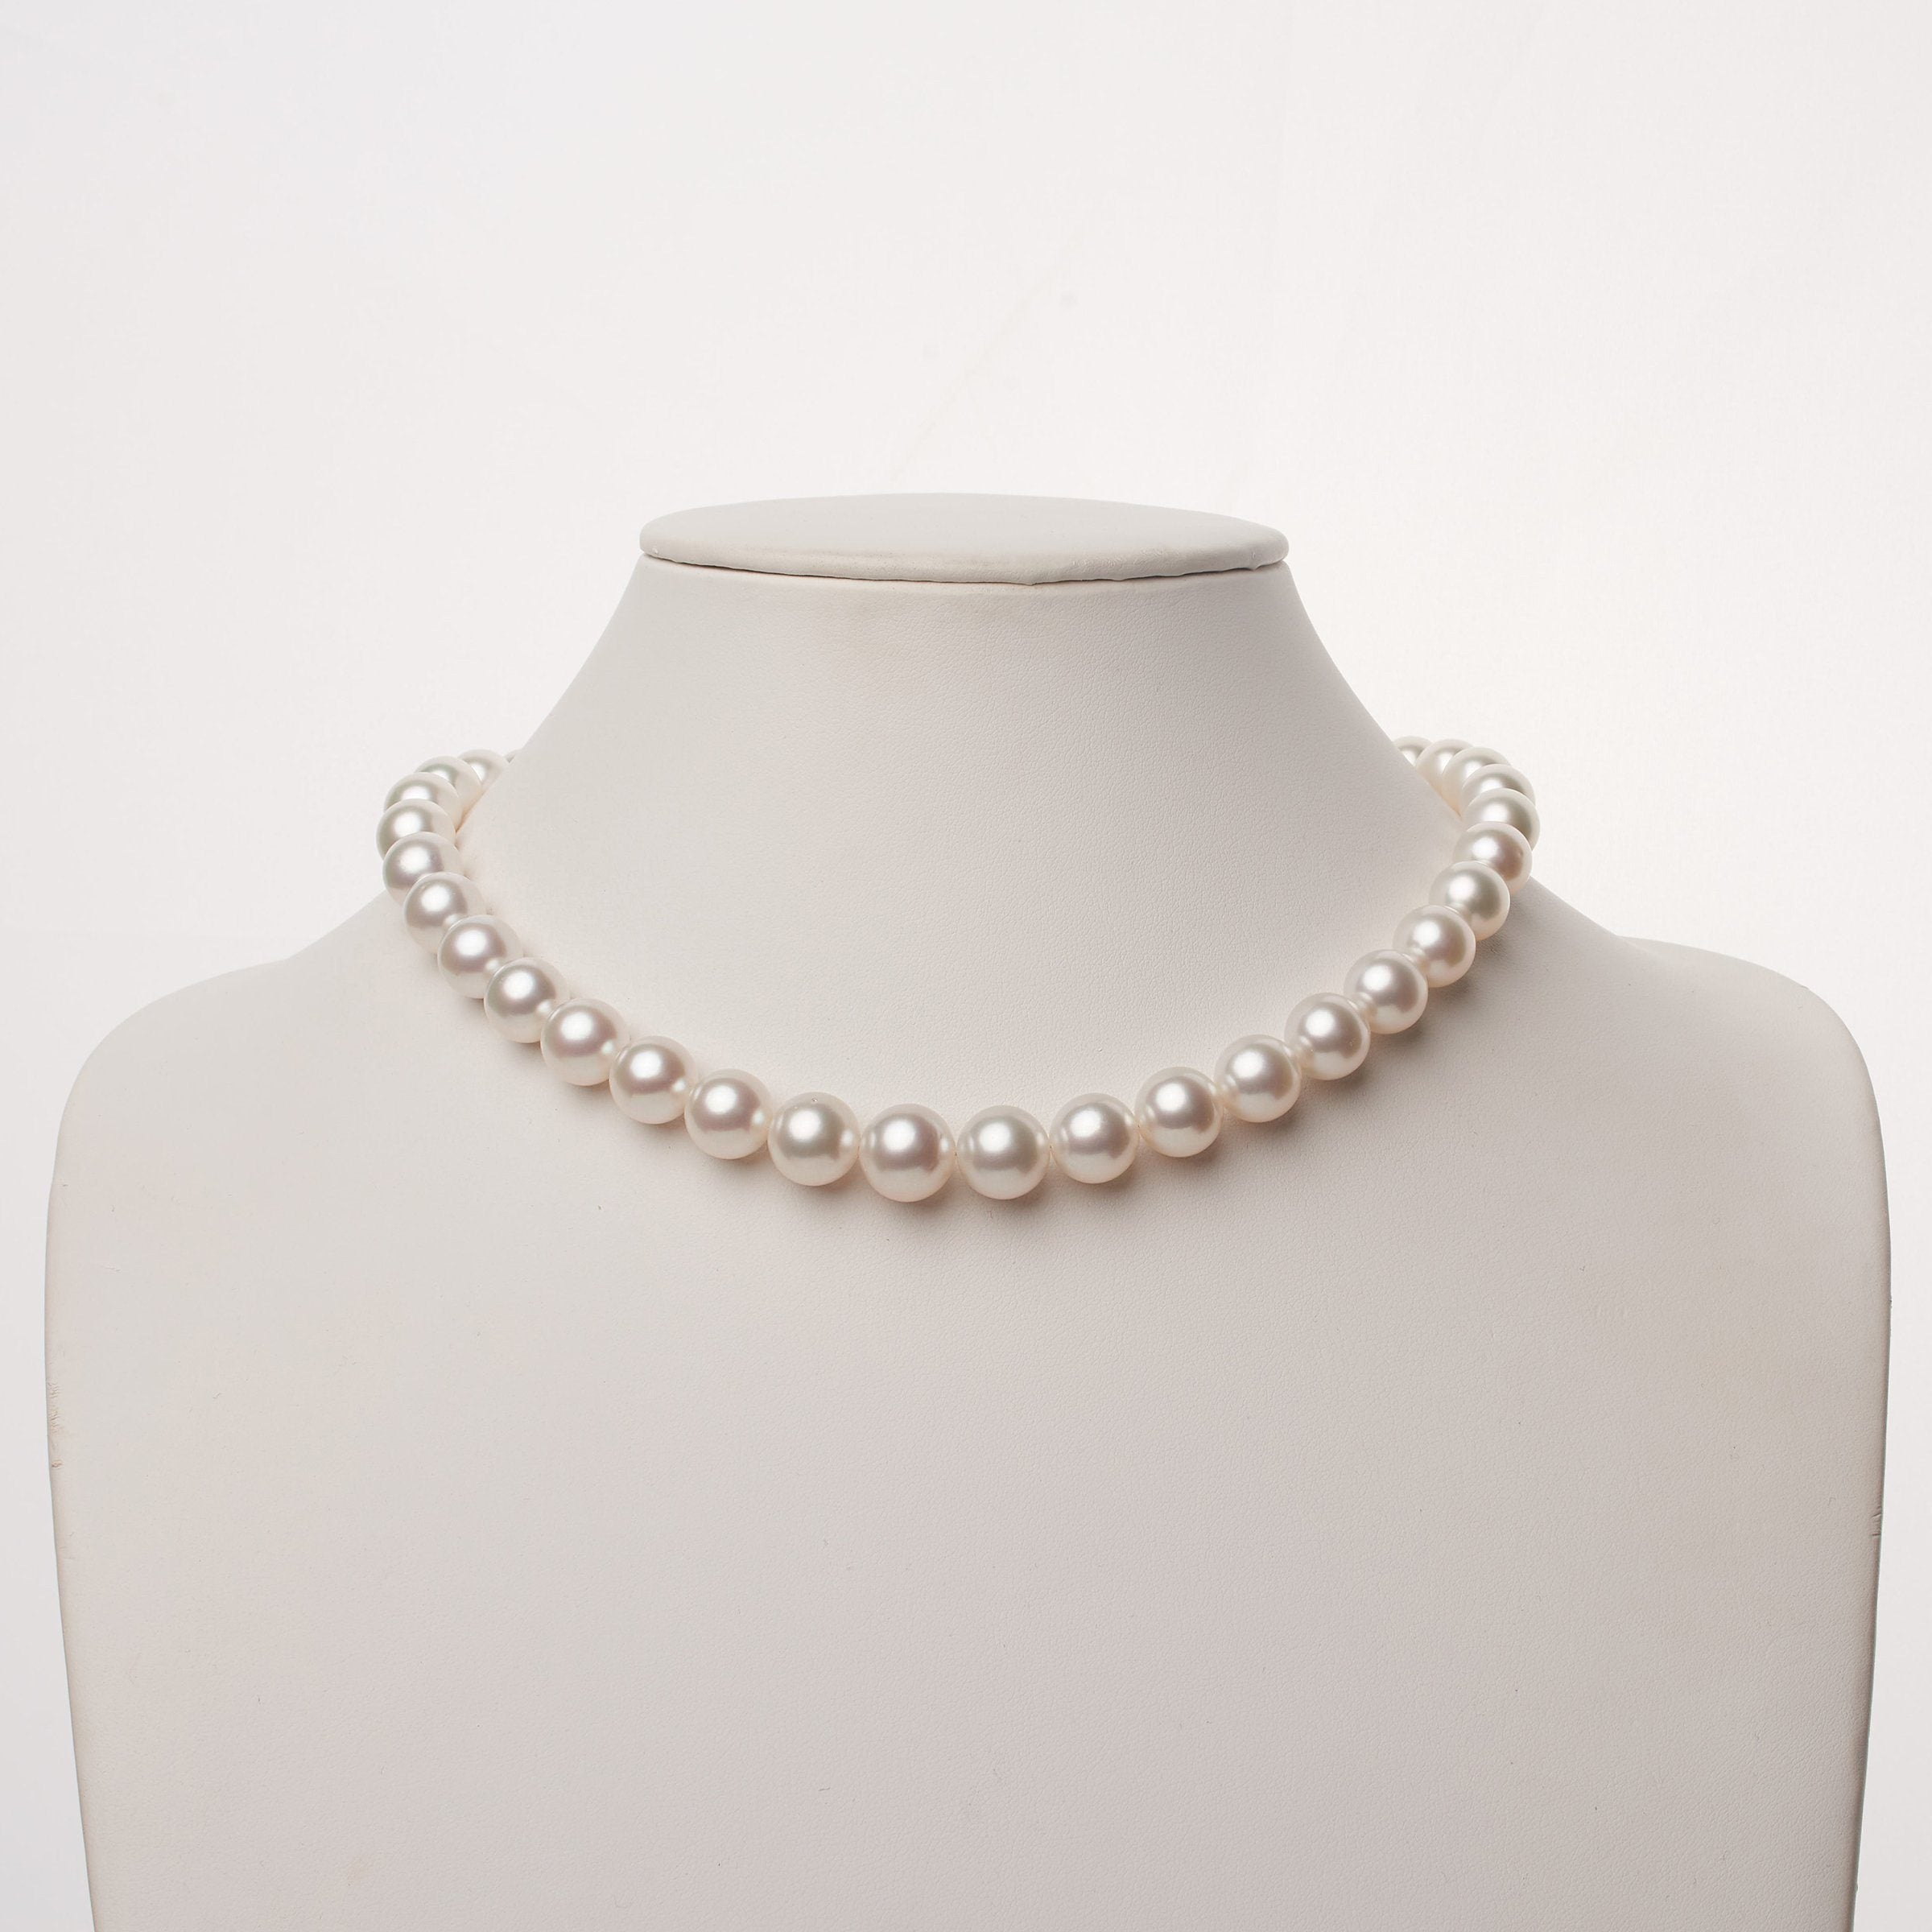 10.0-12.3 mm AA+/AAA White South Sea Round Pearl Necklace